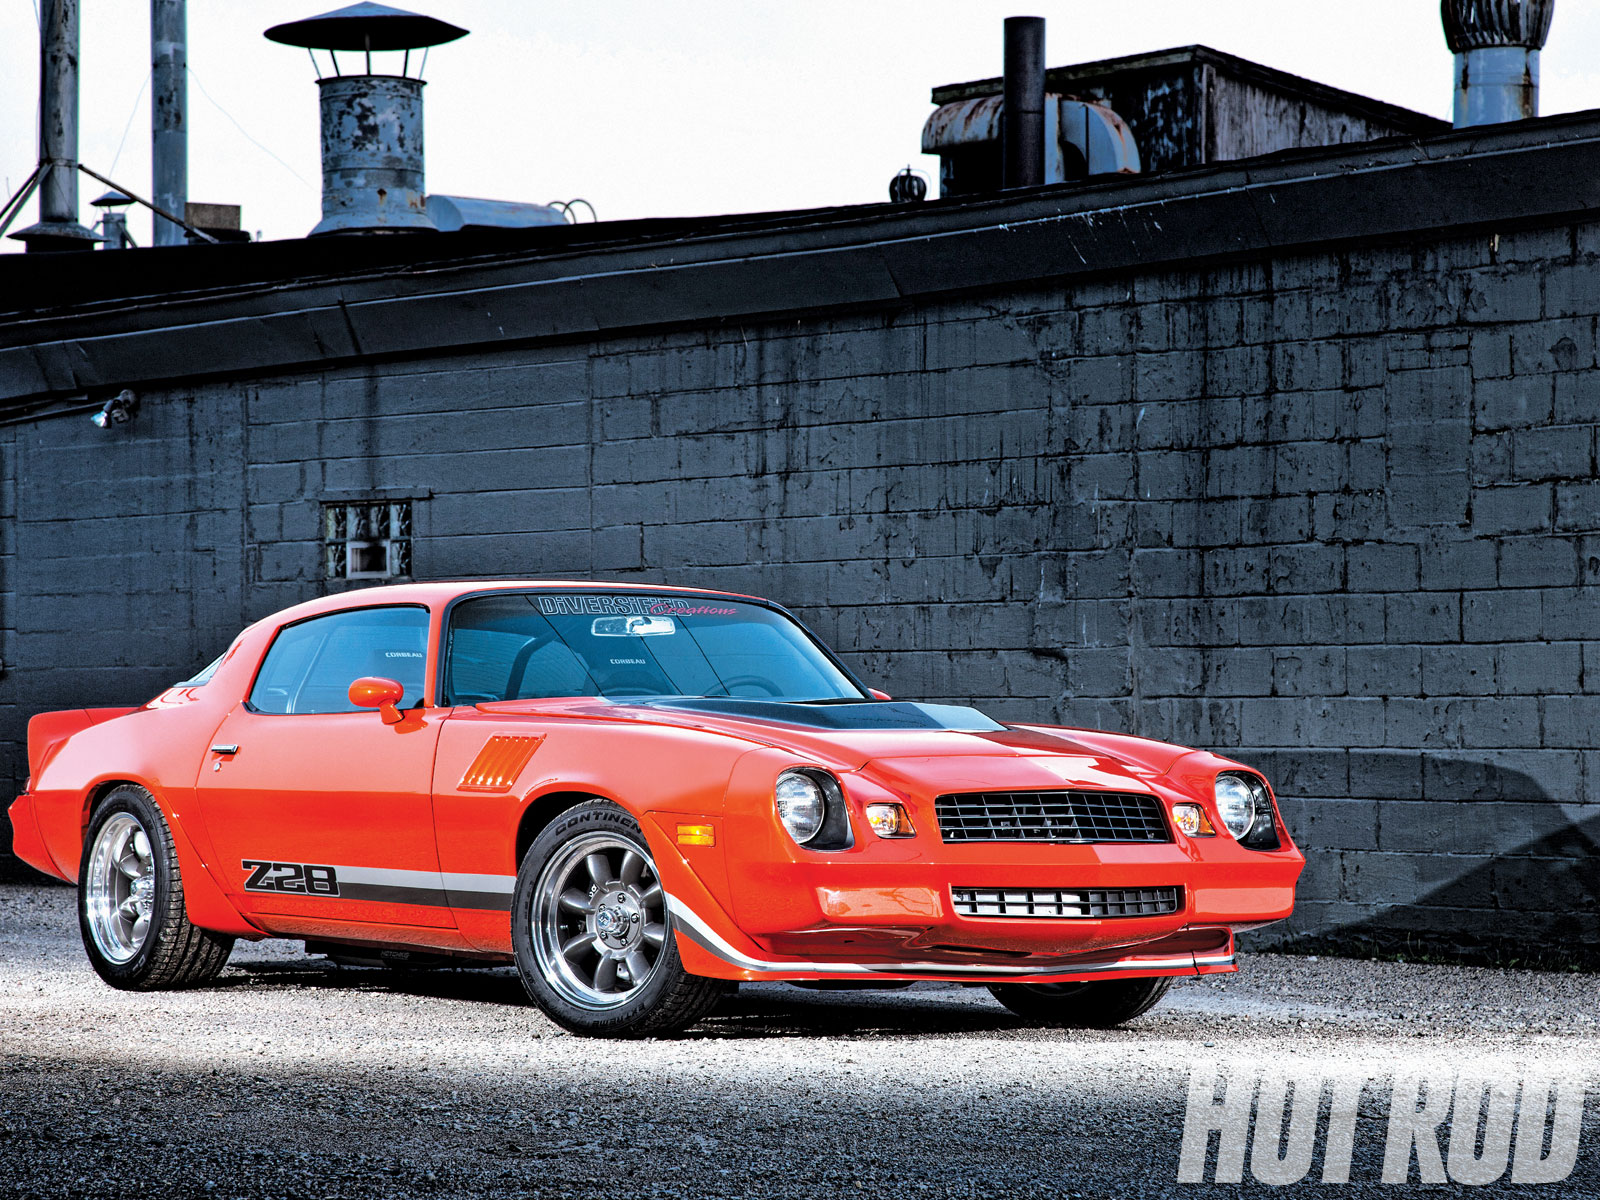 Mustang Z28 >> 3DTuning of Chevrolet Camaro Z28 Coupe 1979 3DTuning.com ...